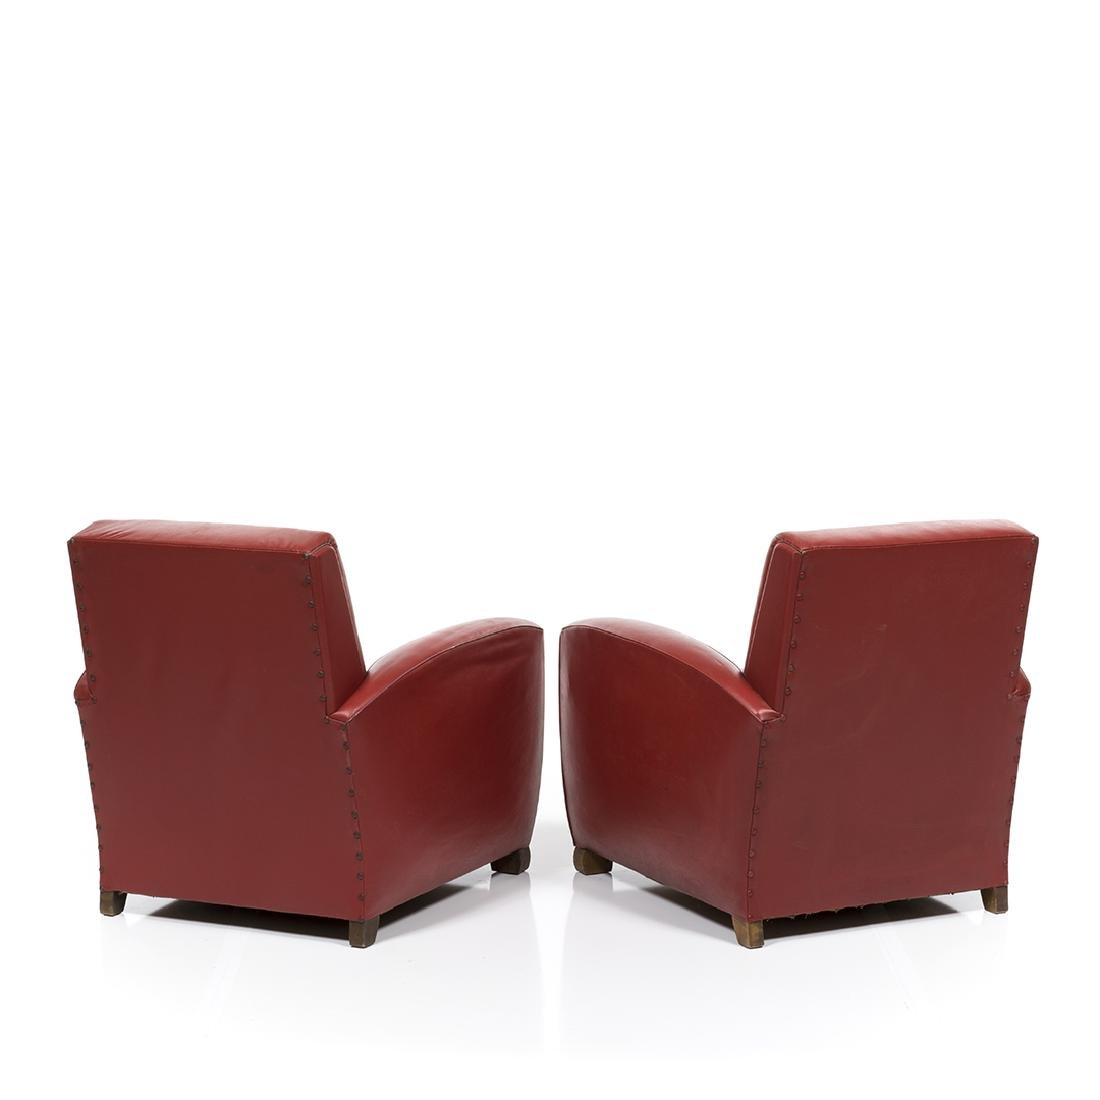 French Club Chairs - 3